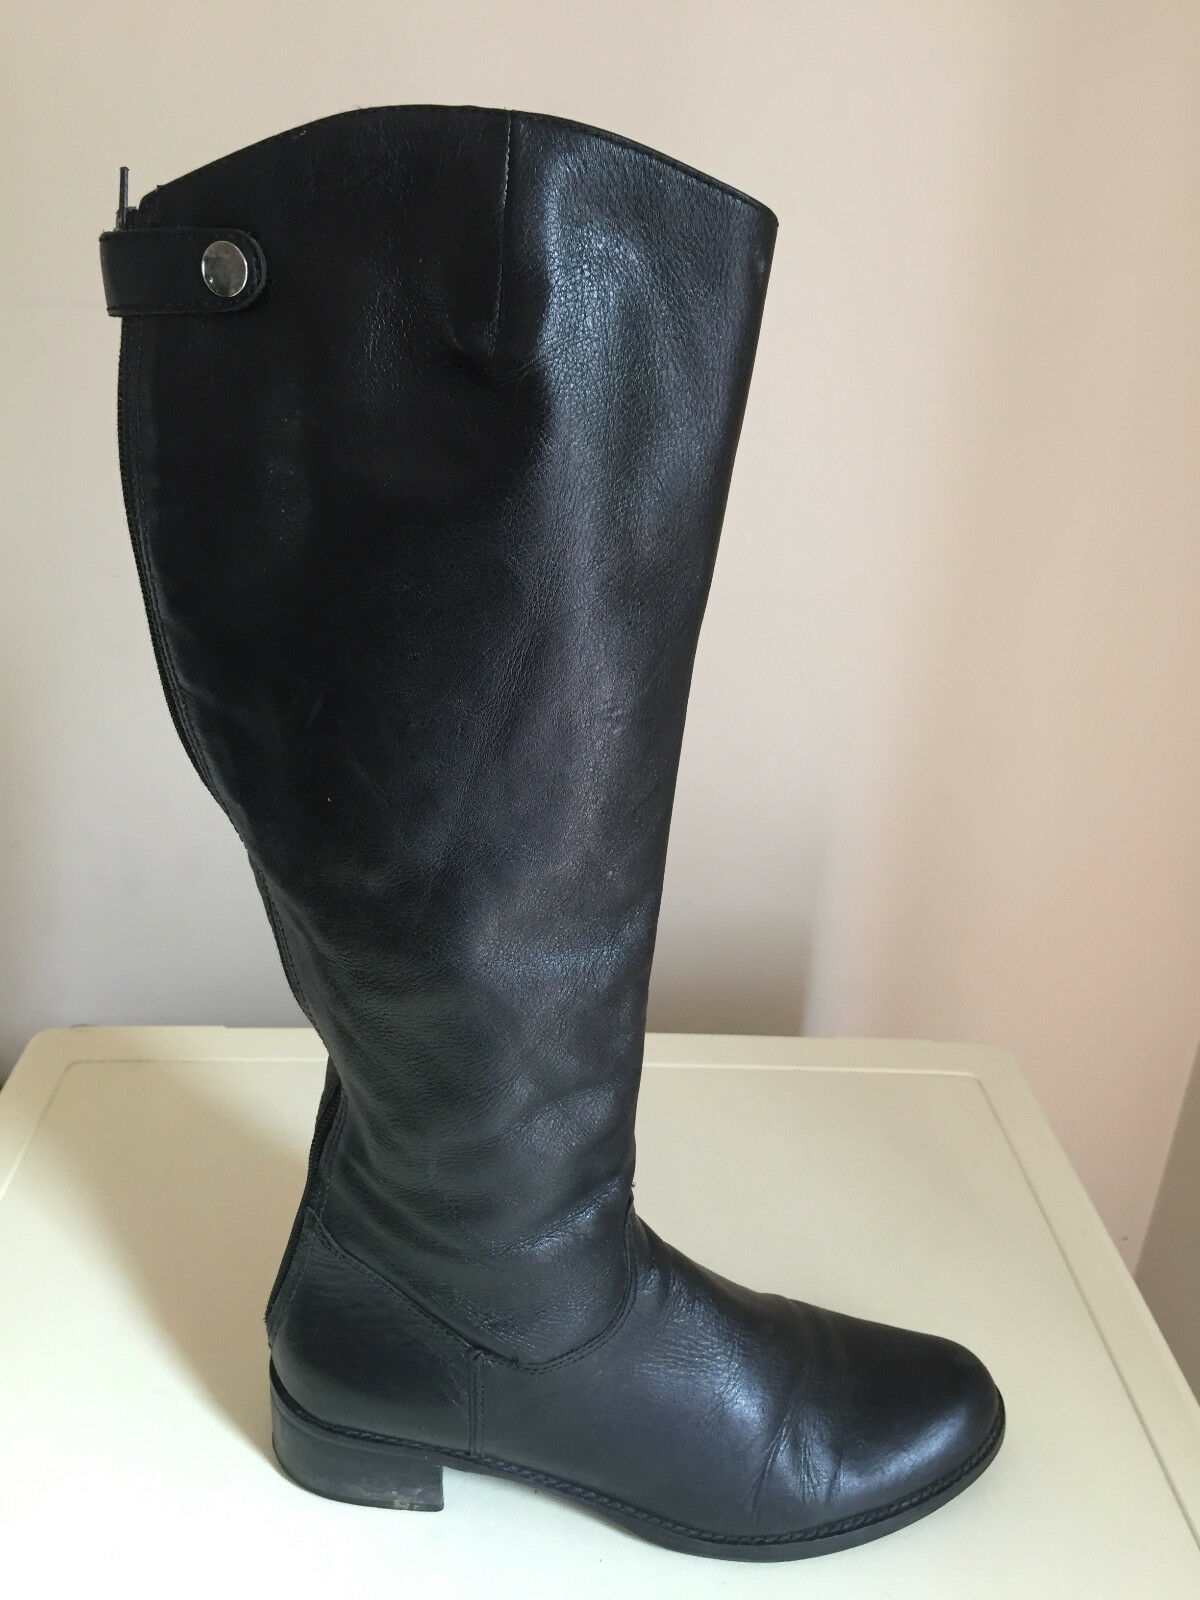 WOMEN DUNE LONDON BLACK LEATHER KNEE HIGH BOOTS SIZE 39